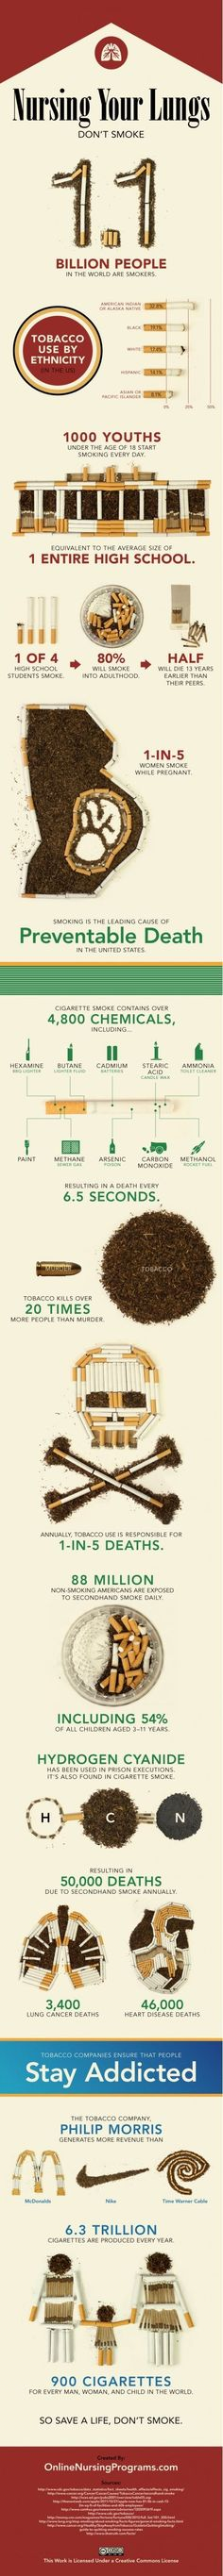 Nursing Your Lungs. Don't smoke. Very interesting break down of smoking and health statistics.